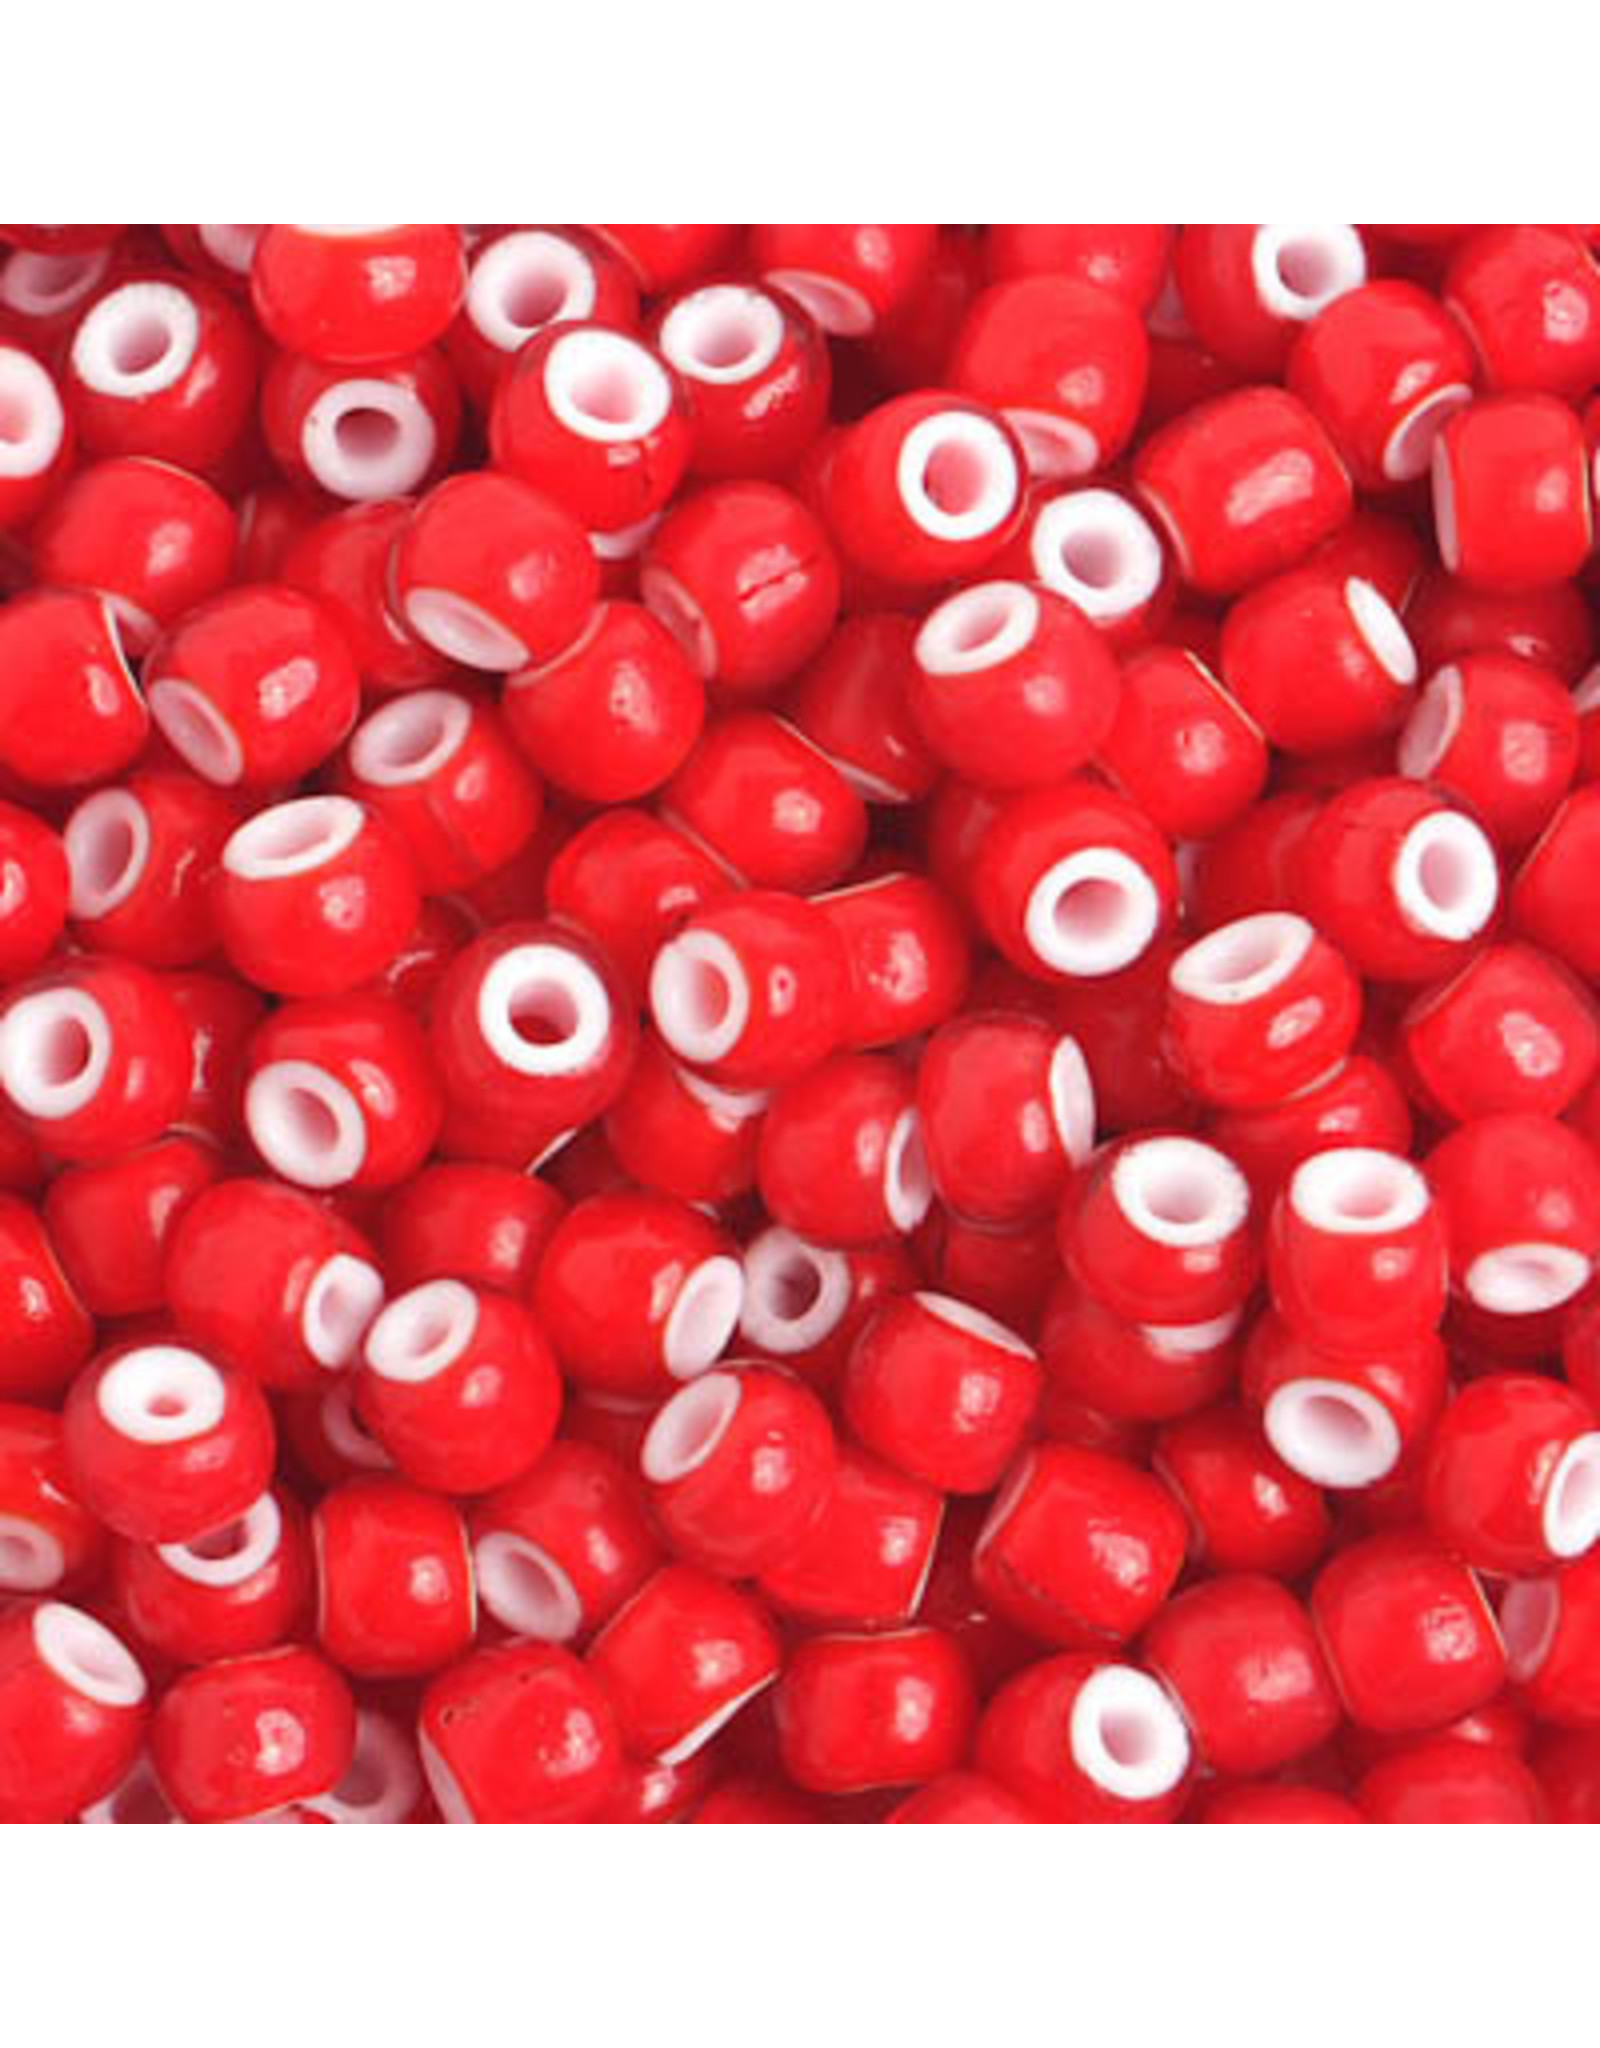 Czech 201421  8   Seed 20g Red White Hearts